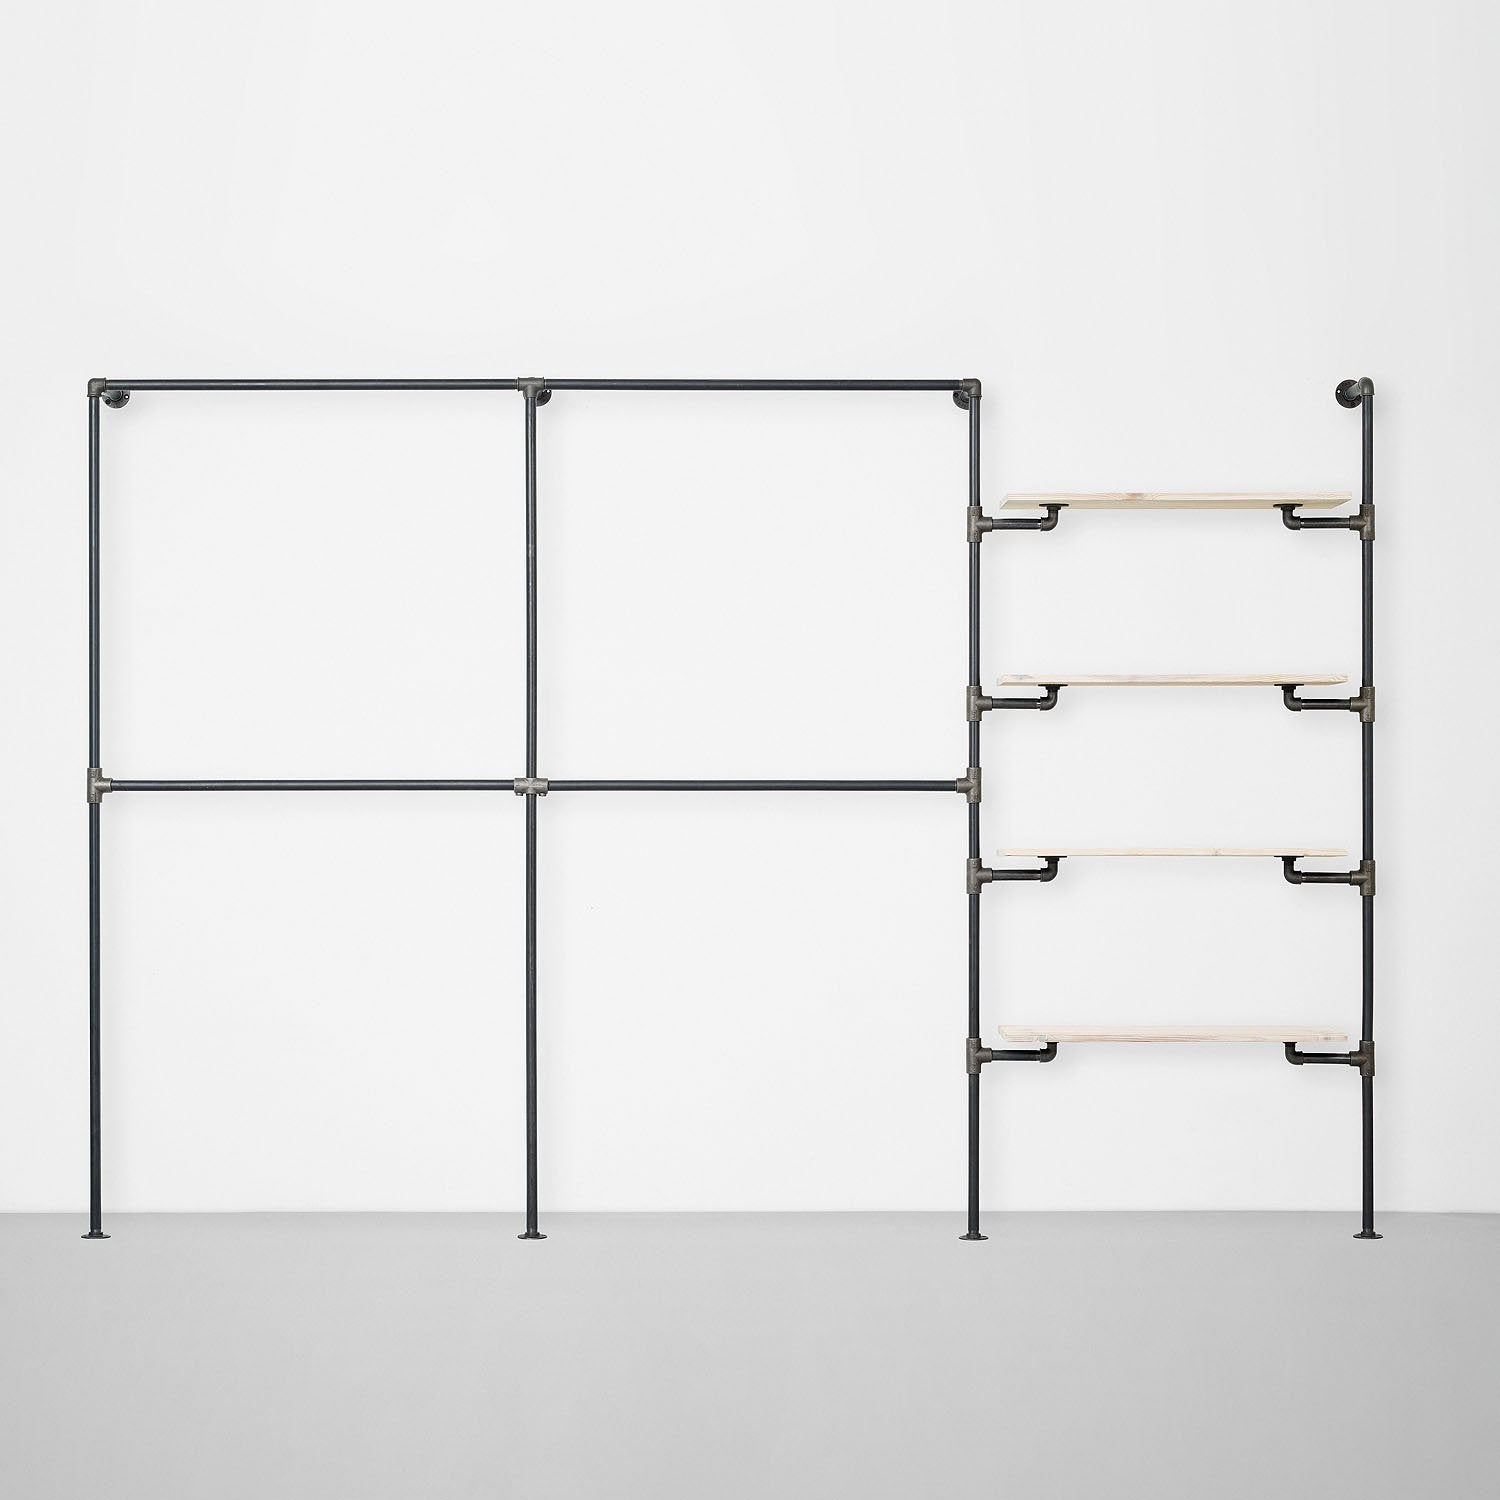 The Walk-In 3 row wardrobe system - (2 rails / 2 rails / 4 shelves)